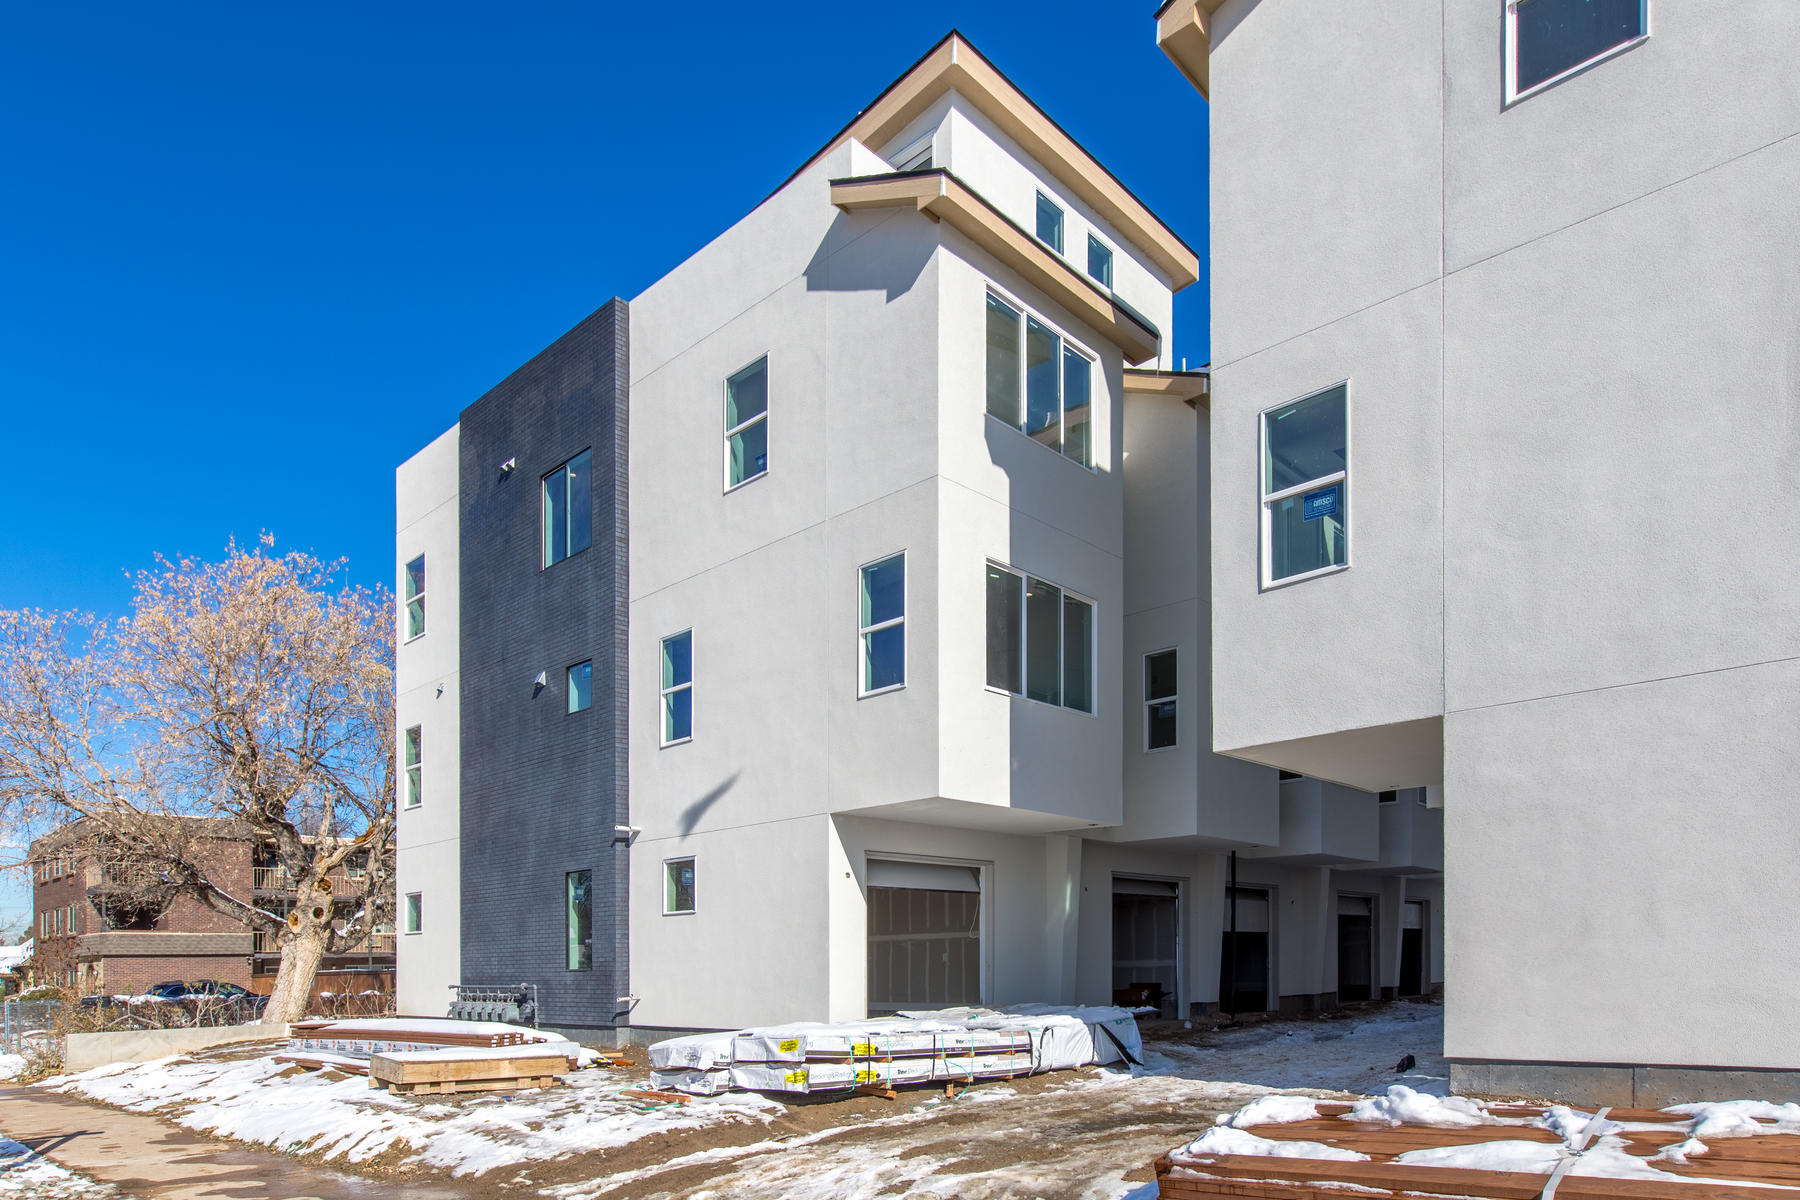 townhouses for Active at New Townhomes in SoBo! 3372 S Pearl Street Unit #A Englewood, Colorado 80113 United States